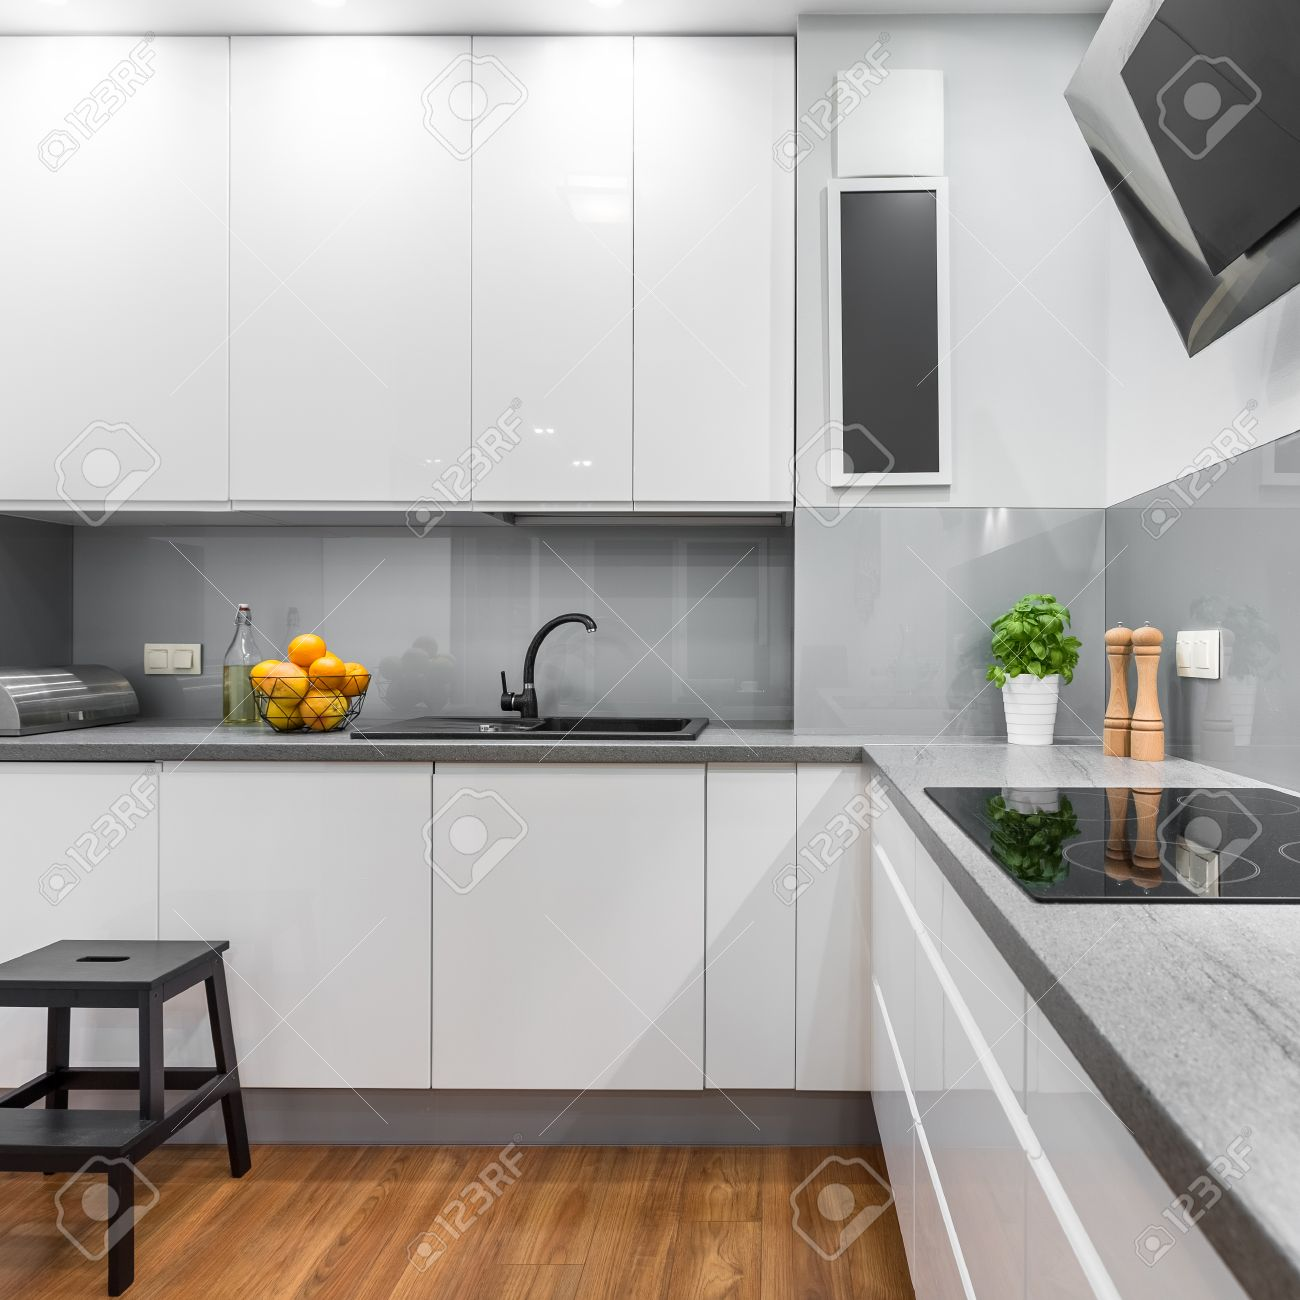 Marvelous Kitchen With White Furniture, Wooden Step Stool And Induction Hob Stock  Photo   66958689